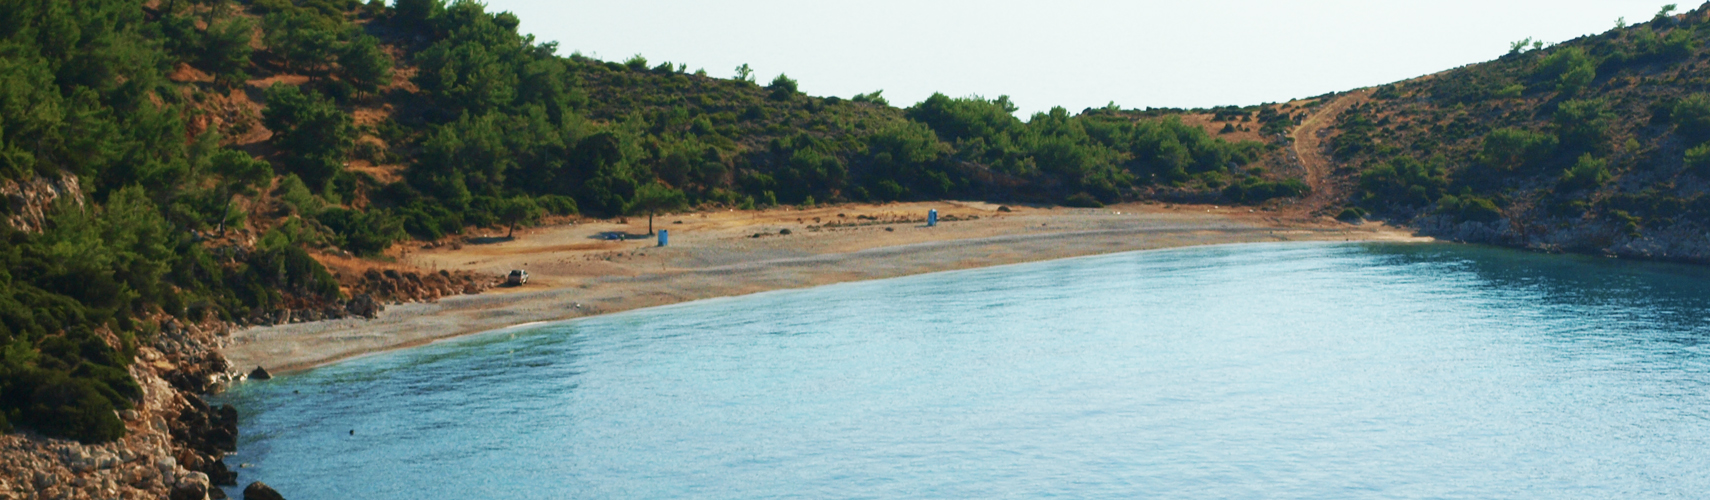 TRAHILI BEACH | Chios Greece - Travel Gude of Chios island